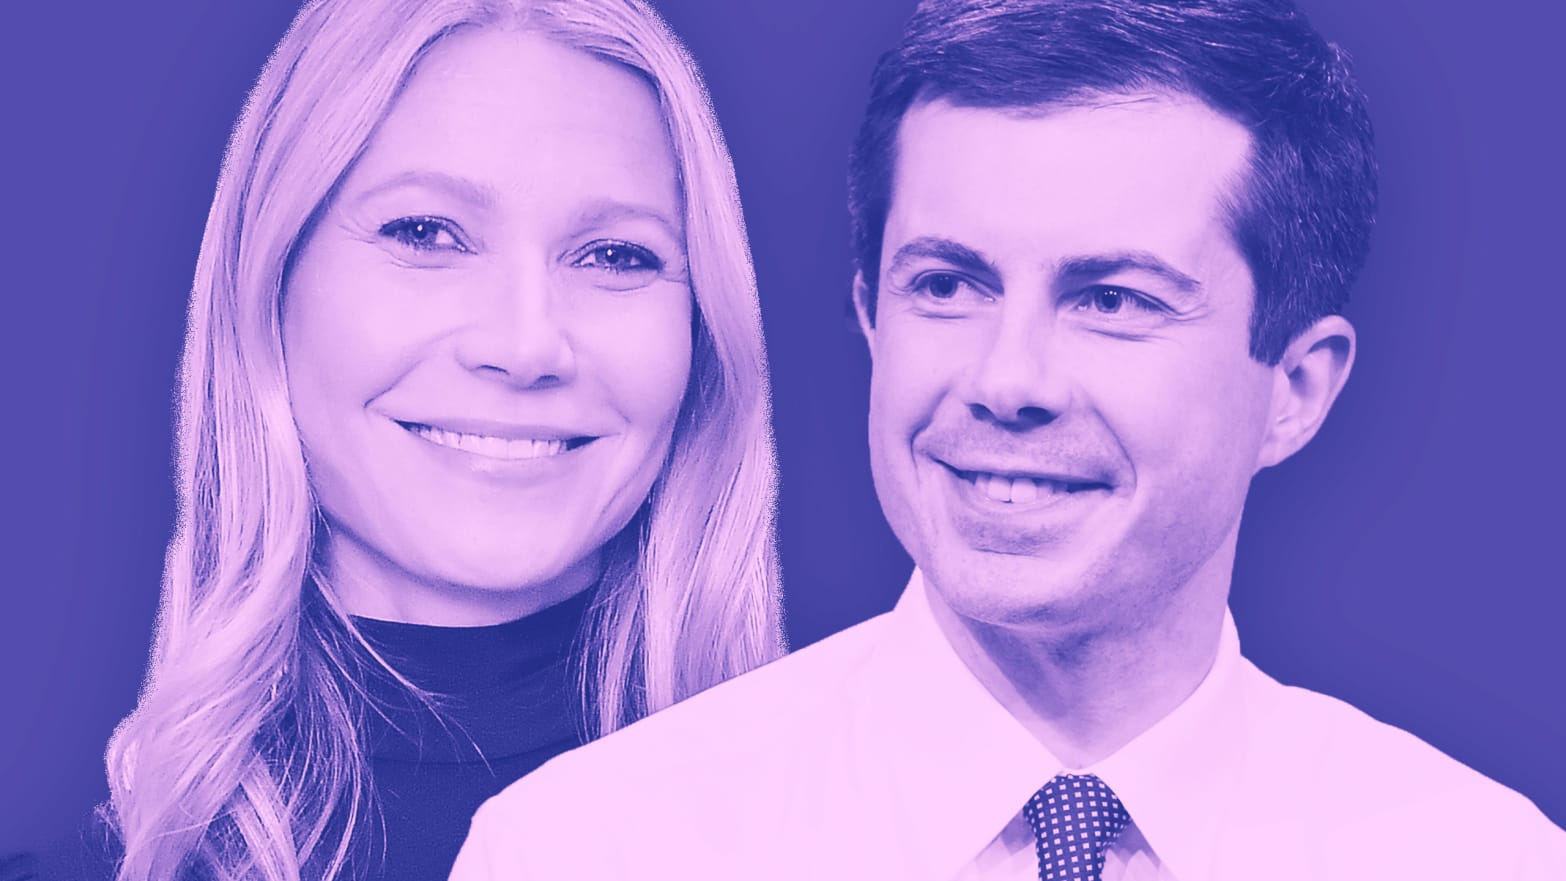 Pete Buttigieg Blasted for Cozying Up to Pseudoscience Goop Queen Gwyneth Paltrow